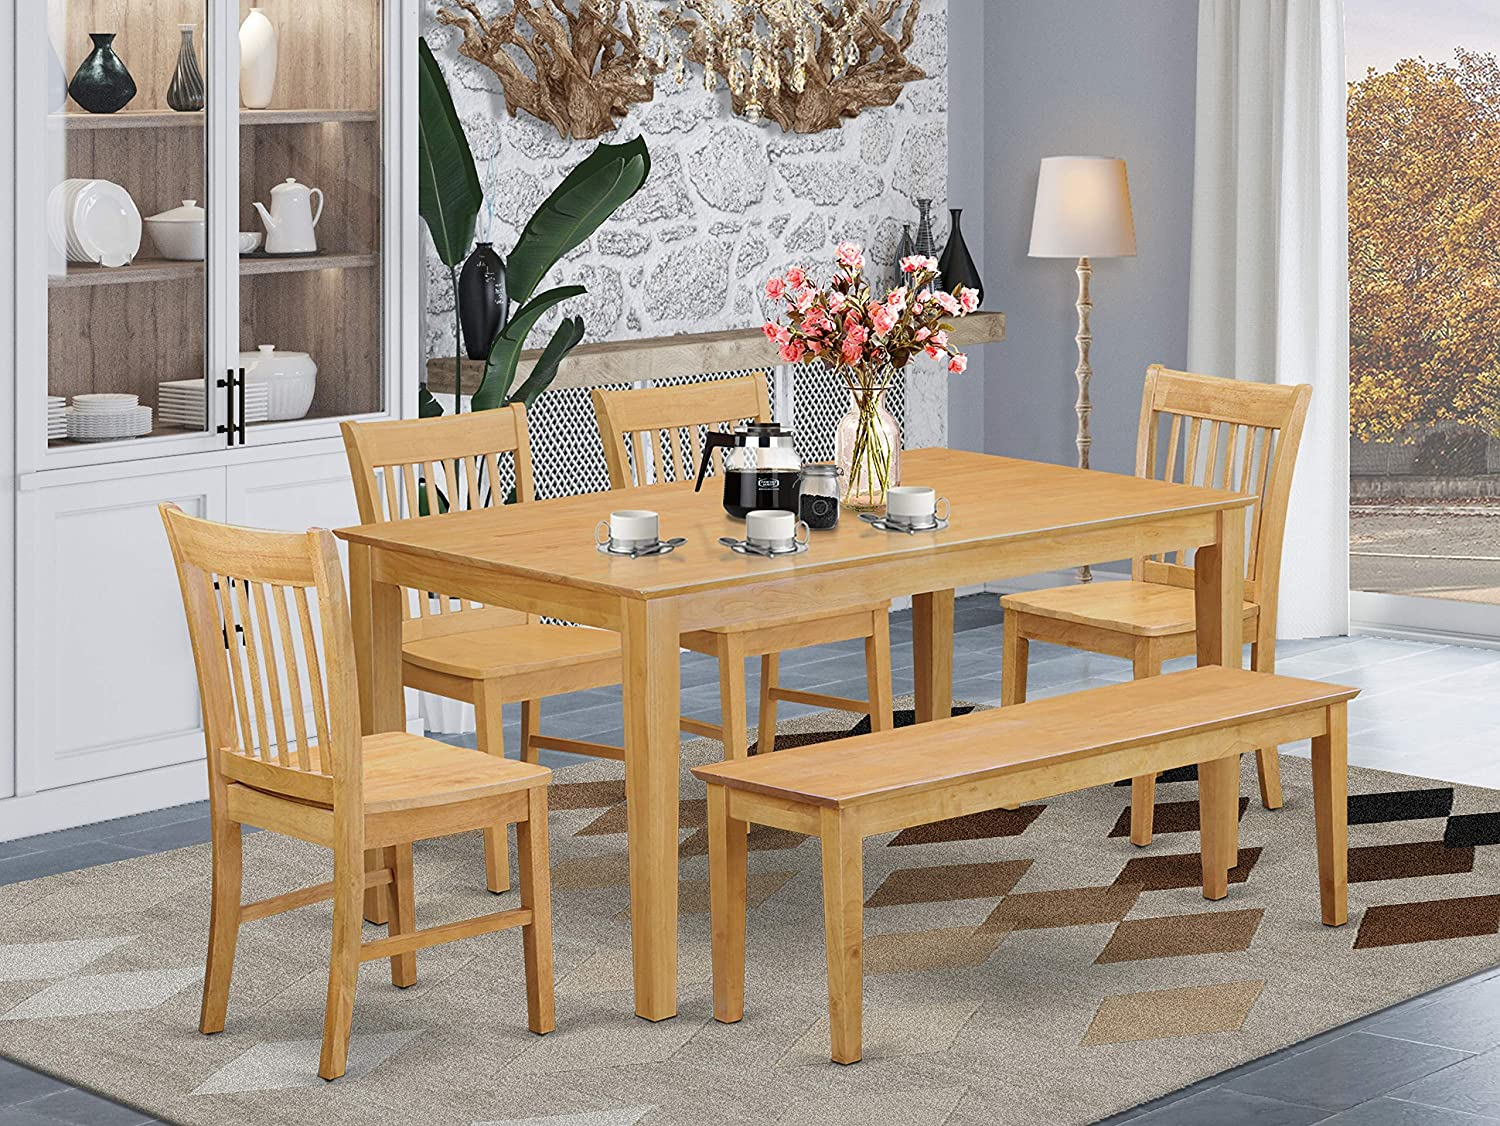 Amazon.com - East West Furniture Rectangular Dining Table Set 6 Pc - Wooden Modern Dining Chairs Seat - Oak Finish Dining Room Table And Bench - Table & Chair Sets